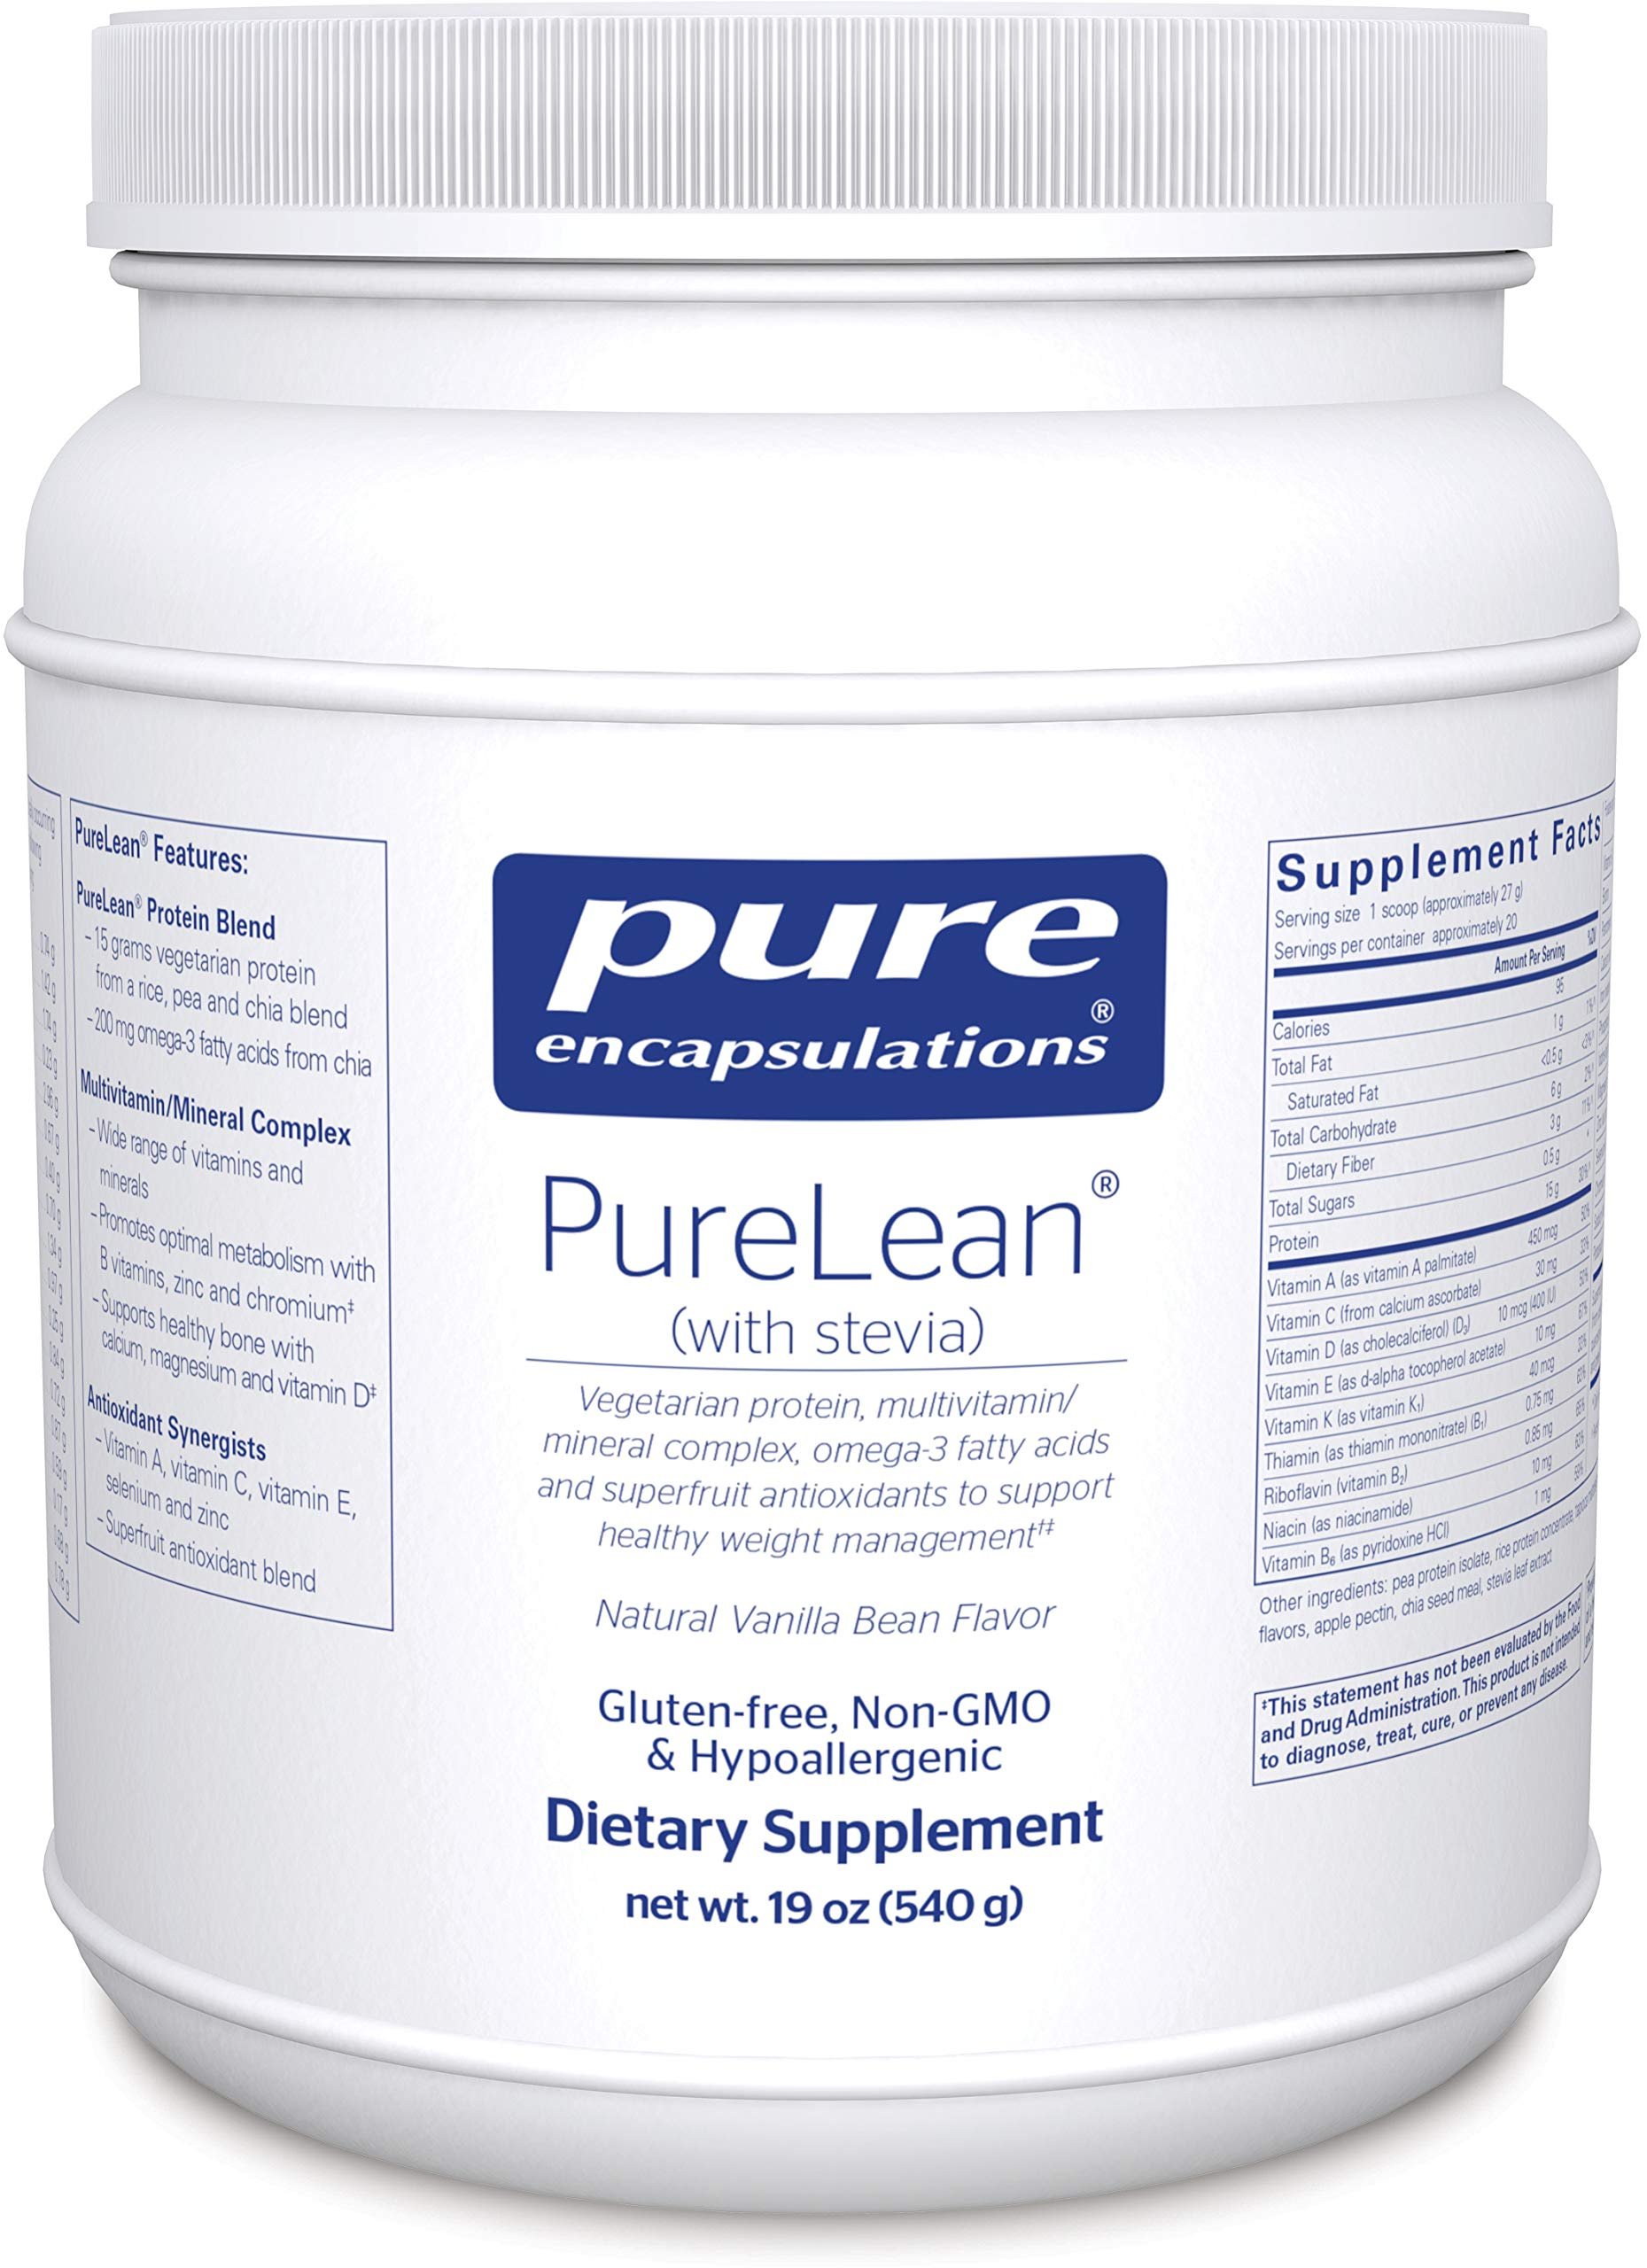 Amazon.com: Pure Encapsulations - PureLean (with Stevia) - Vegetarian Protein for Healthy Weight Management** - Vanilla Bean Flavor - 540 Grams: Health ...